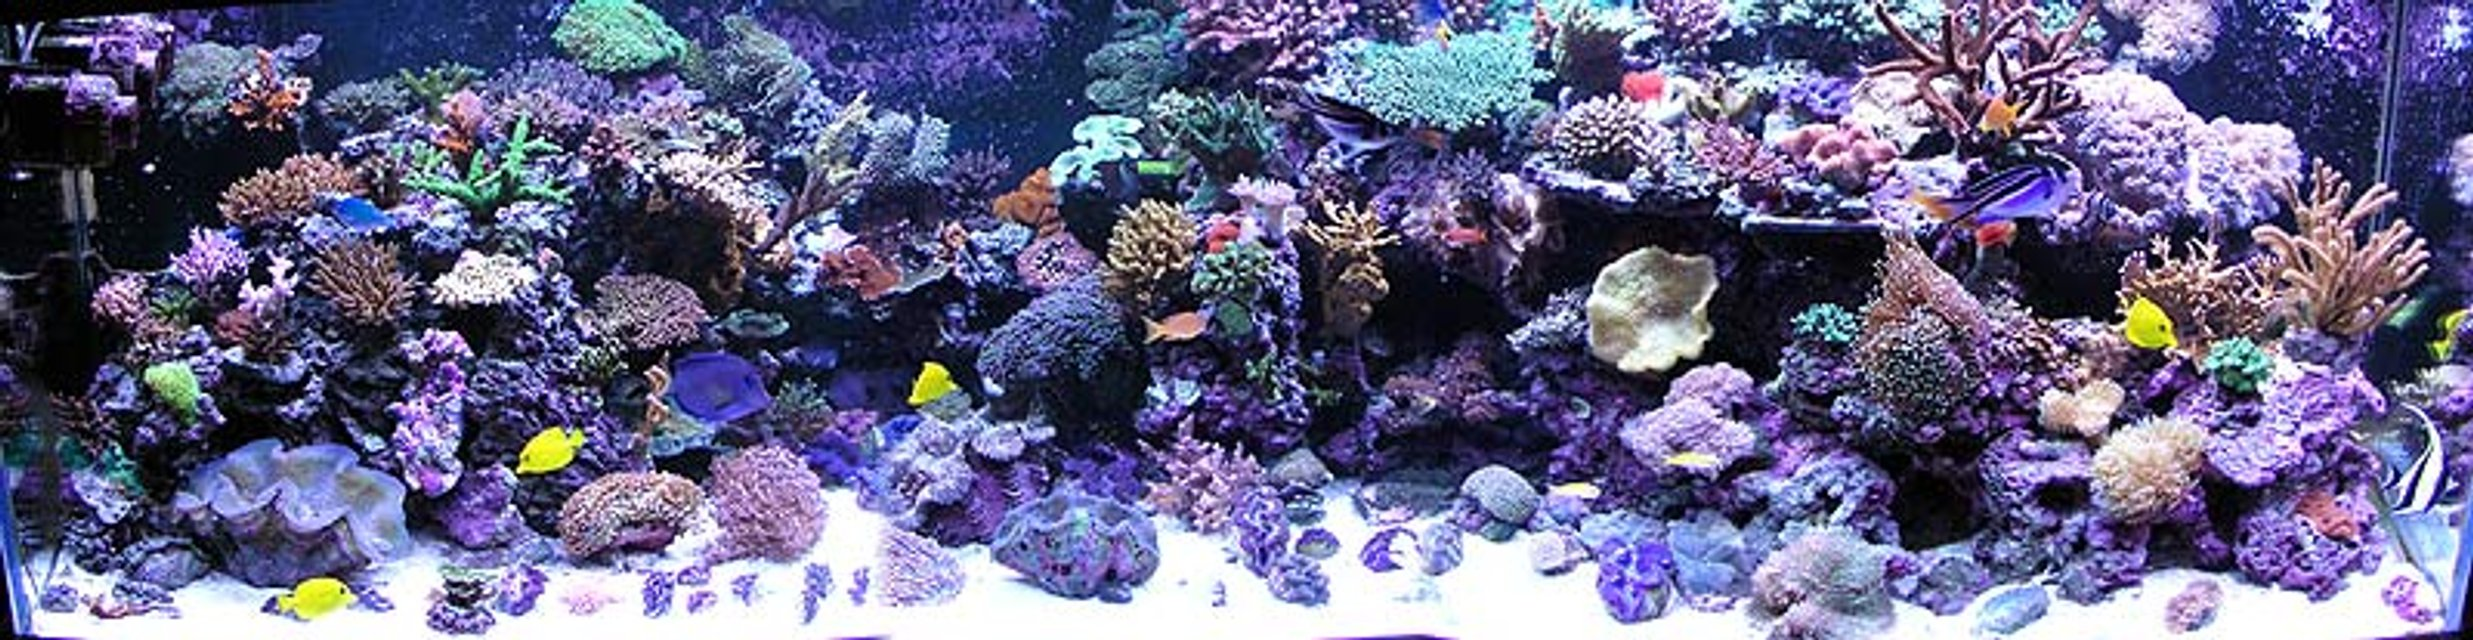 Rated #2: 500 Gallons Reef Tank - Full reef tank pic.